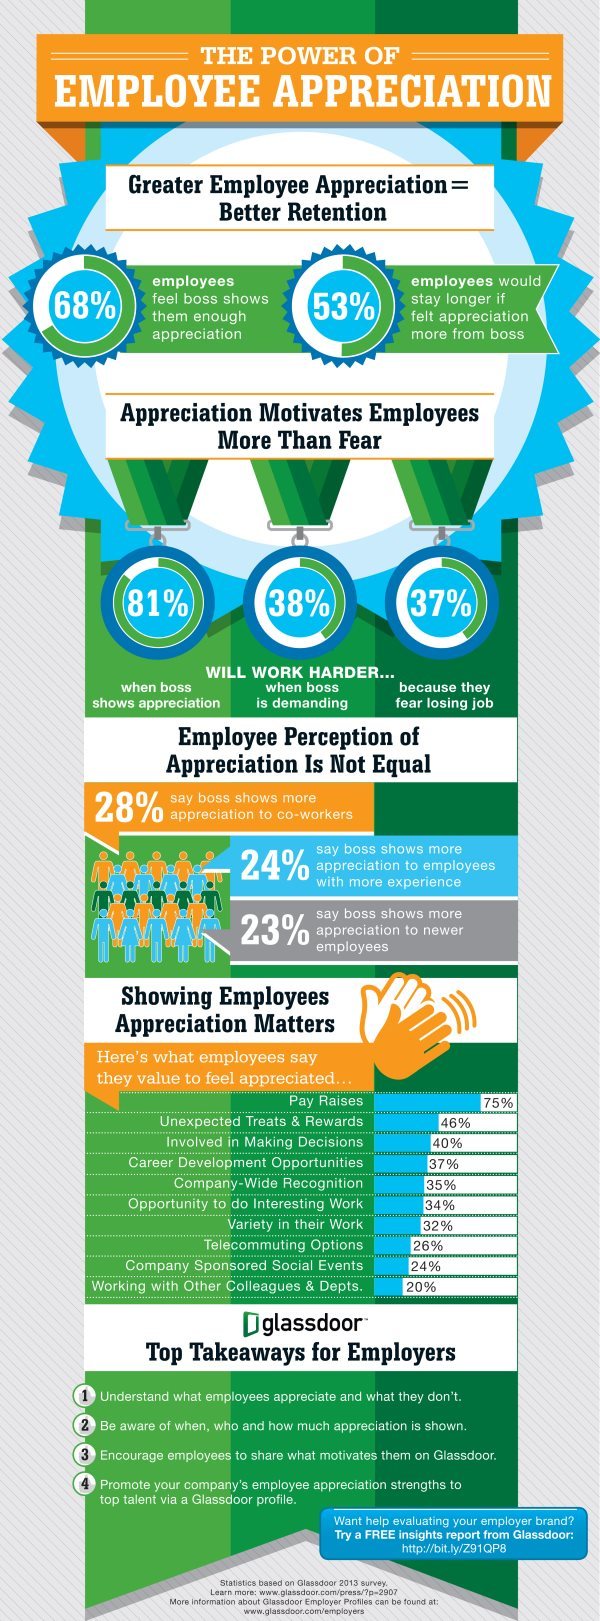 The Power of Employee Appreciation